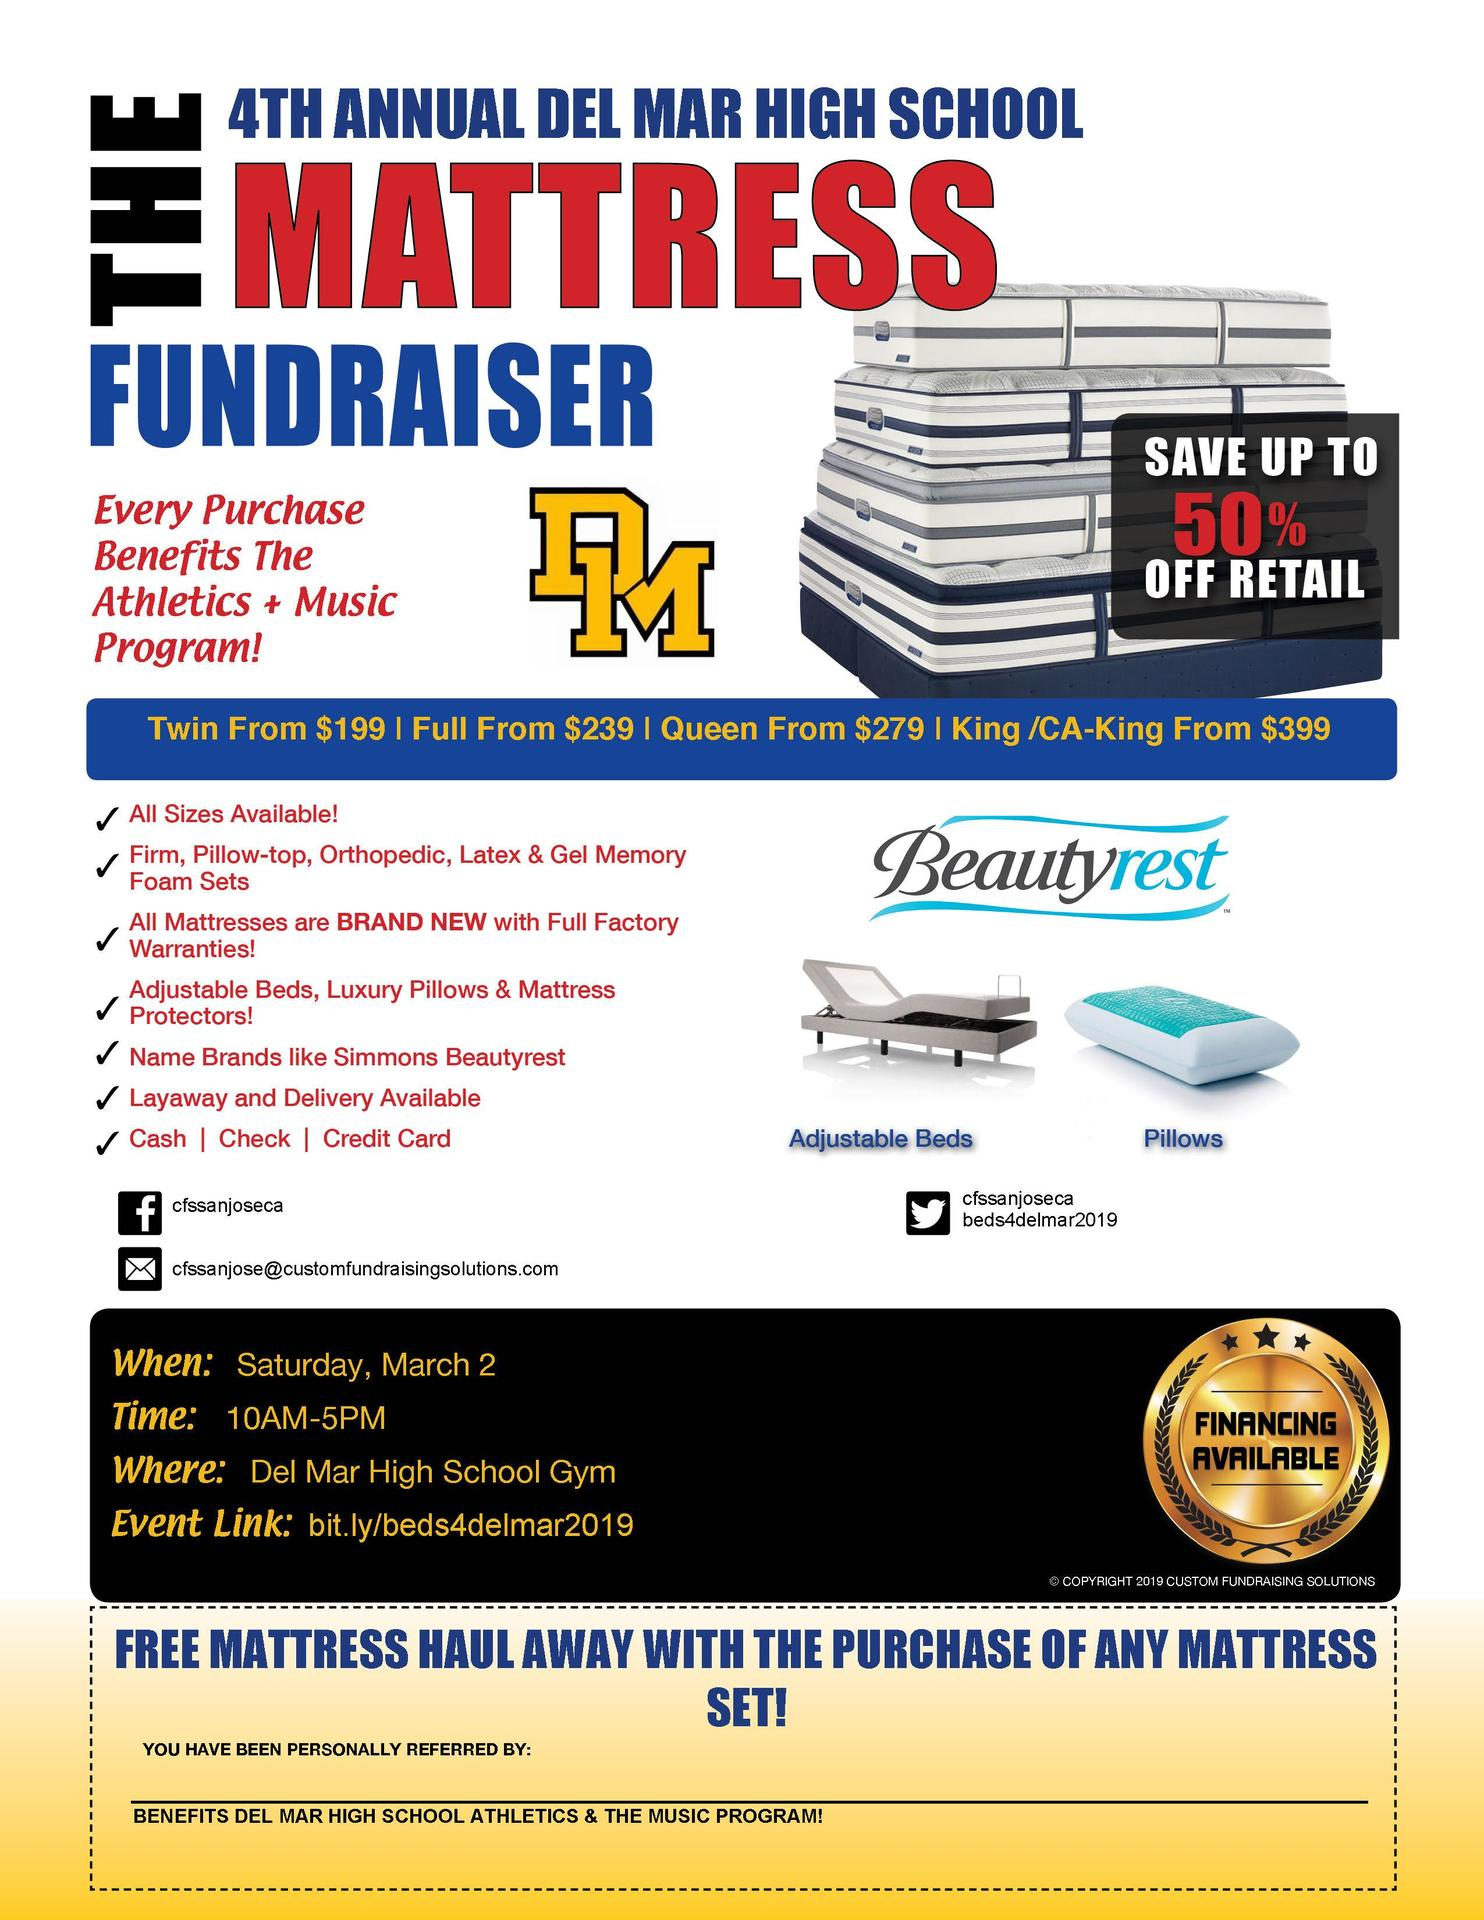 Image of Mattress Fundraiser on March 2, 2019